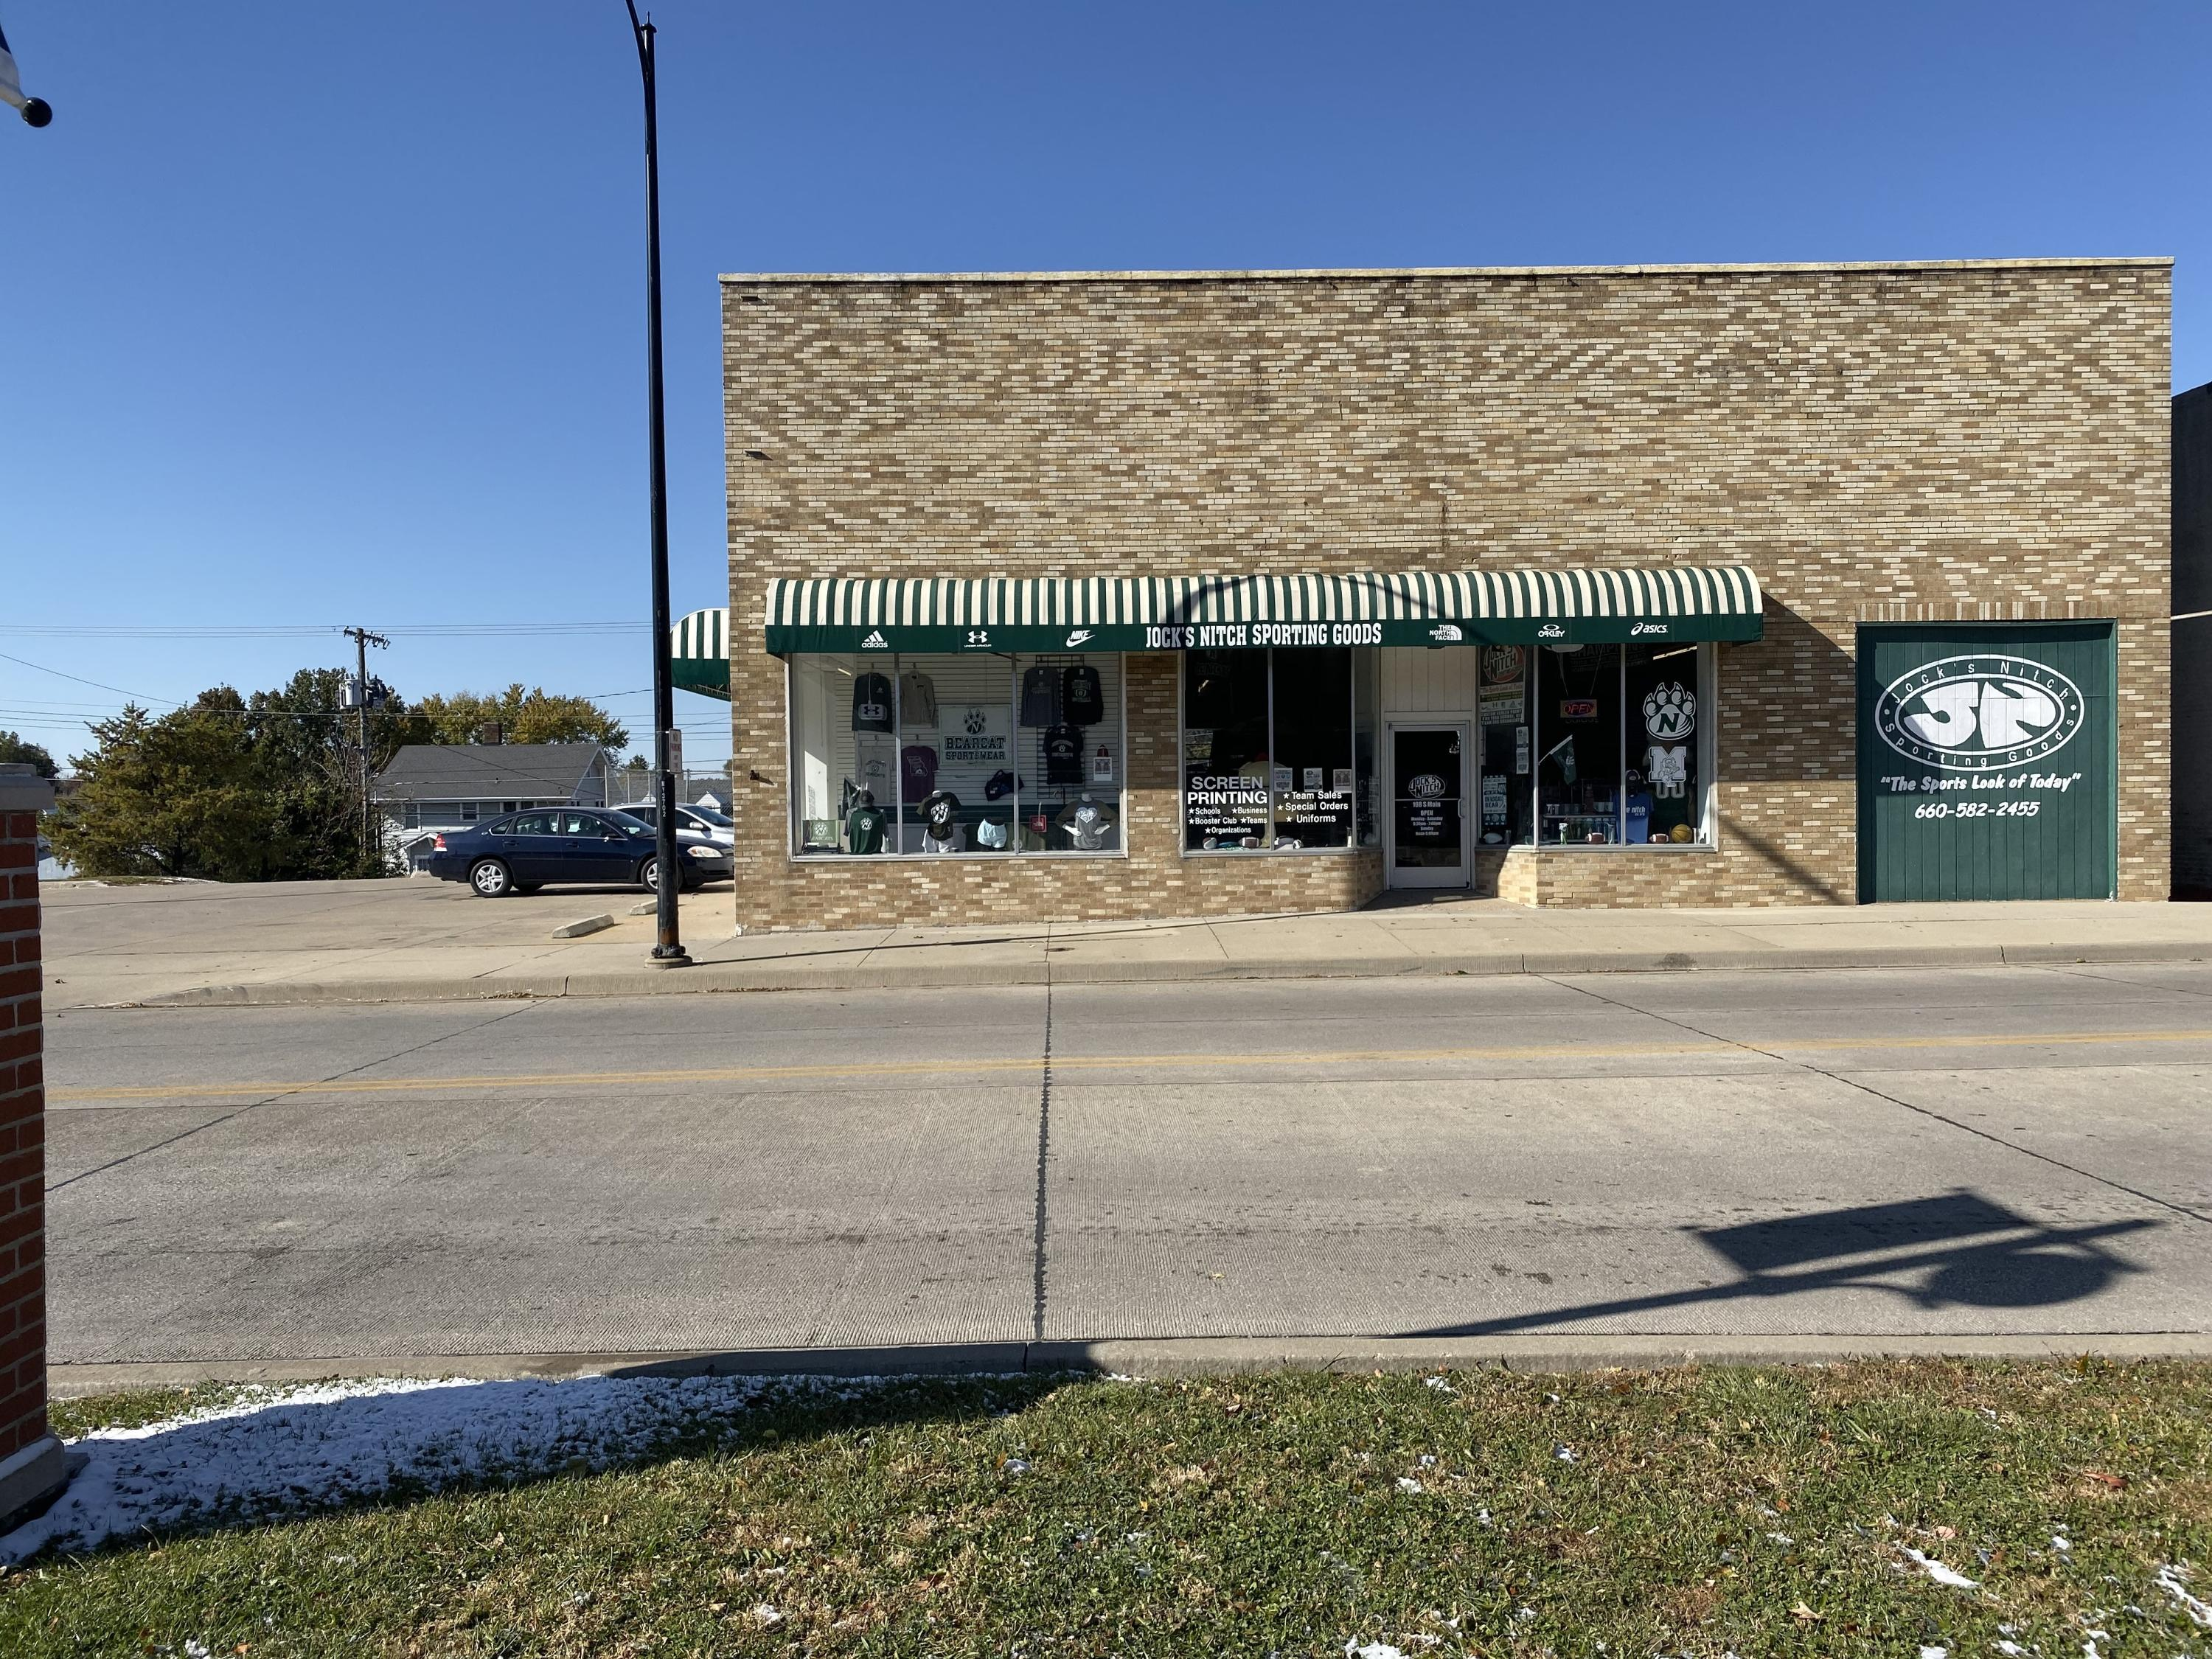 108 S MAIN ST, Maryville, Missouri 64468, ,Commercial Improved,MAIN,4621